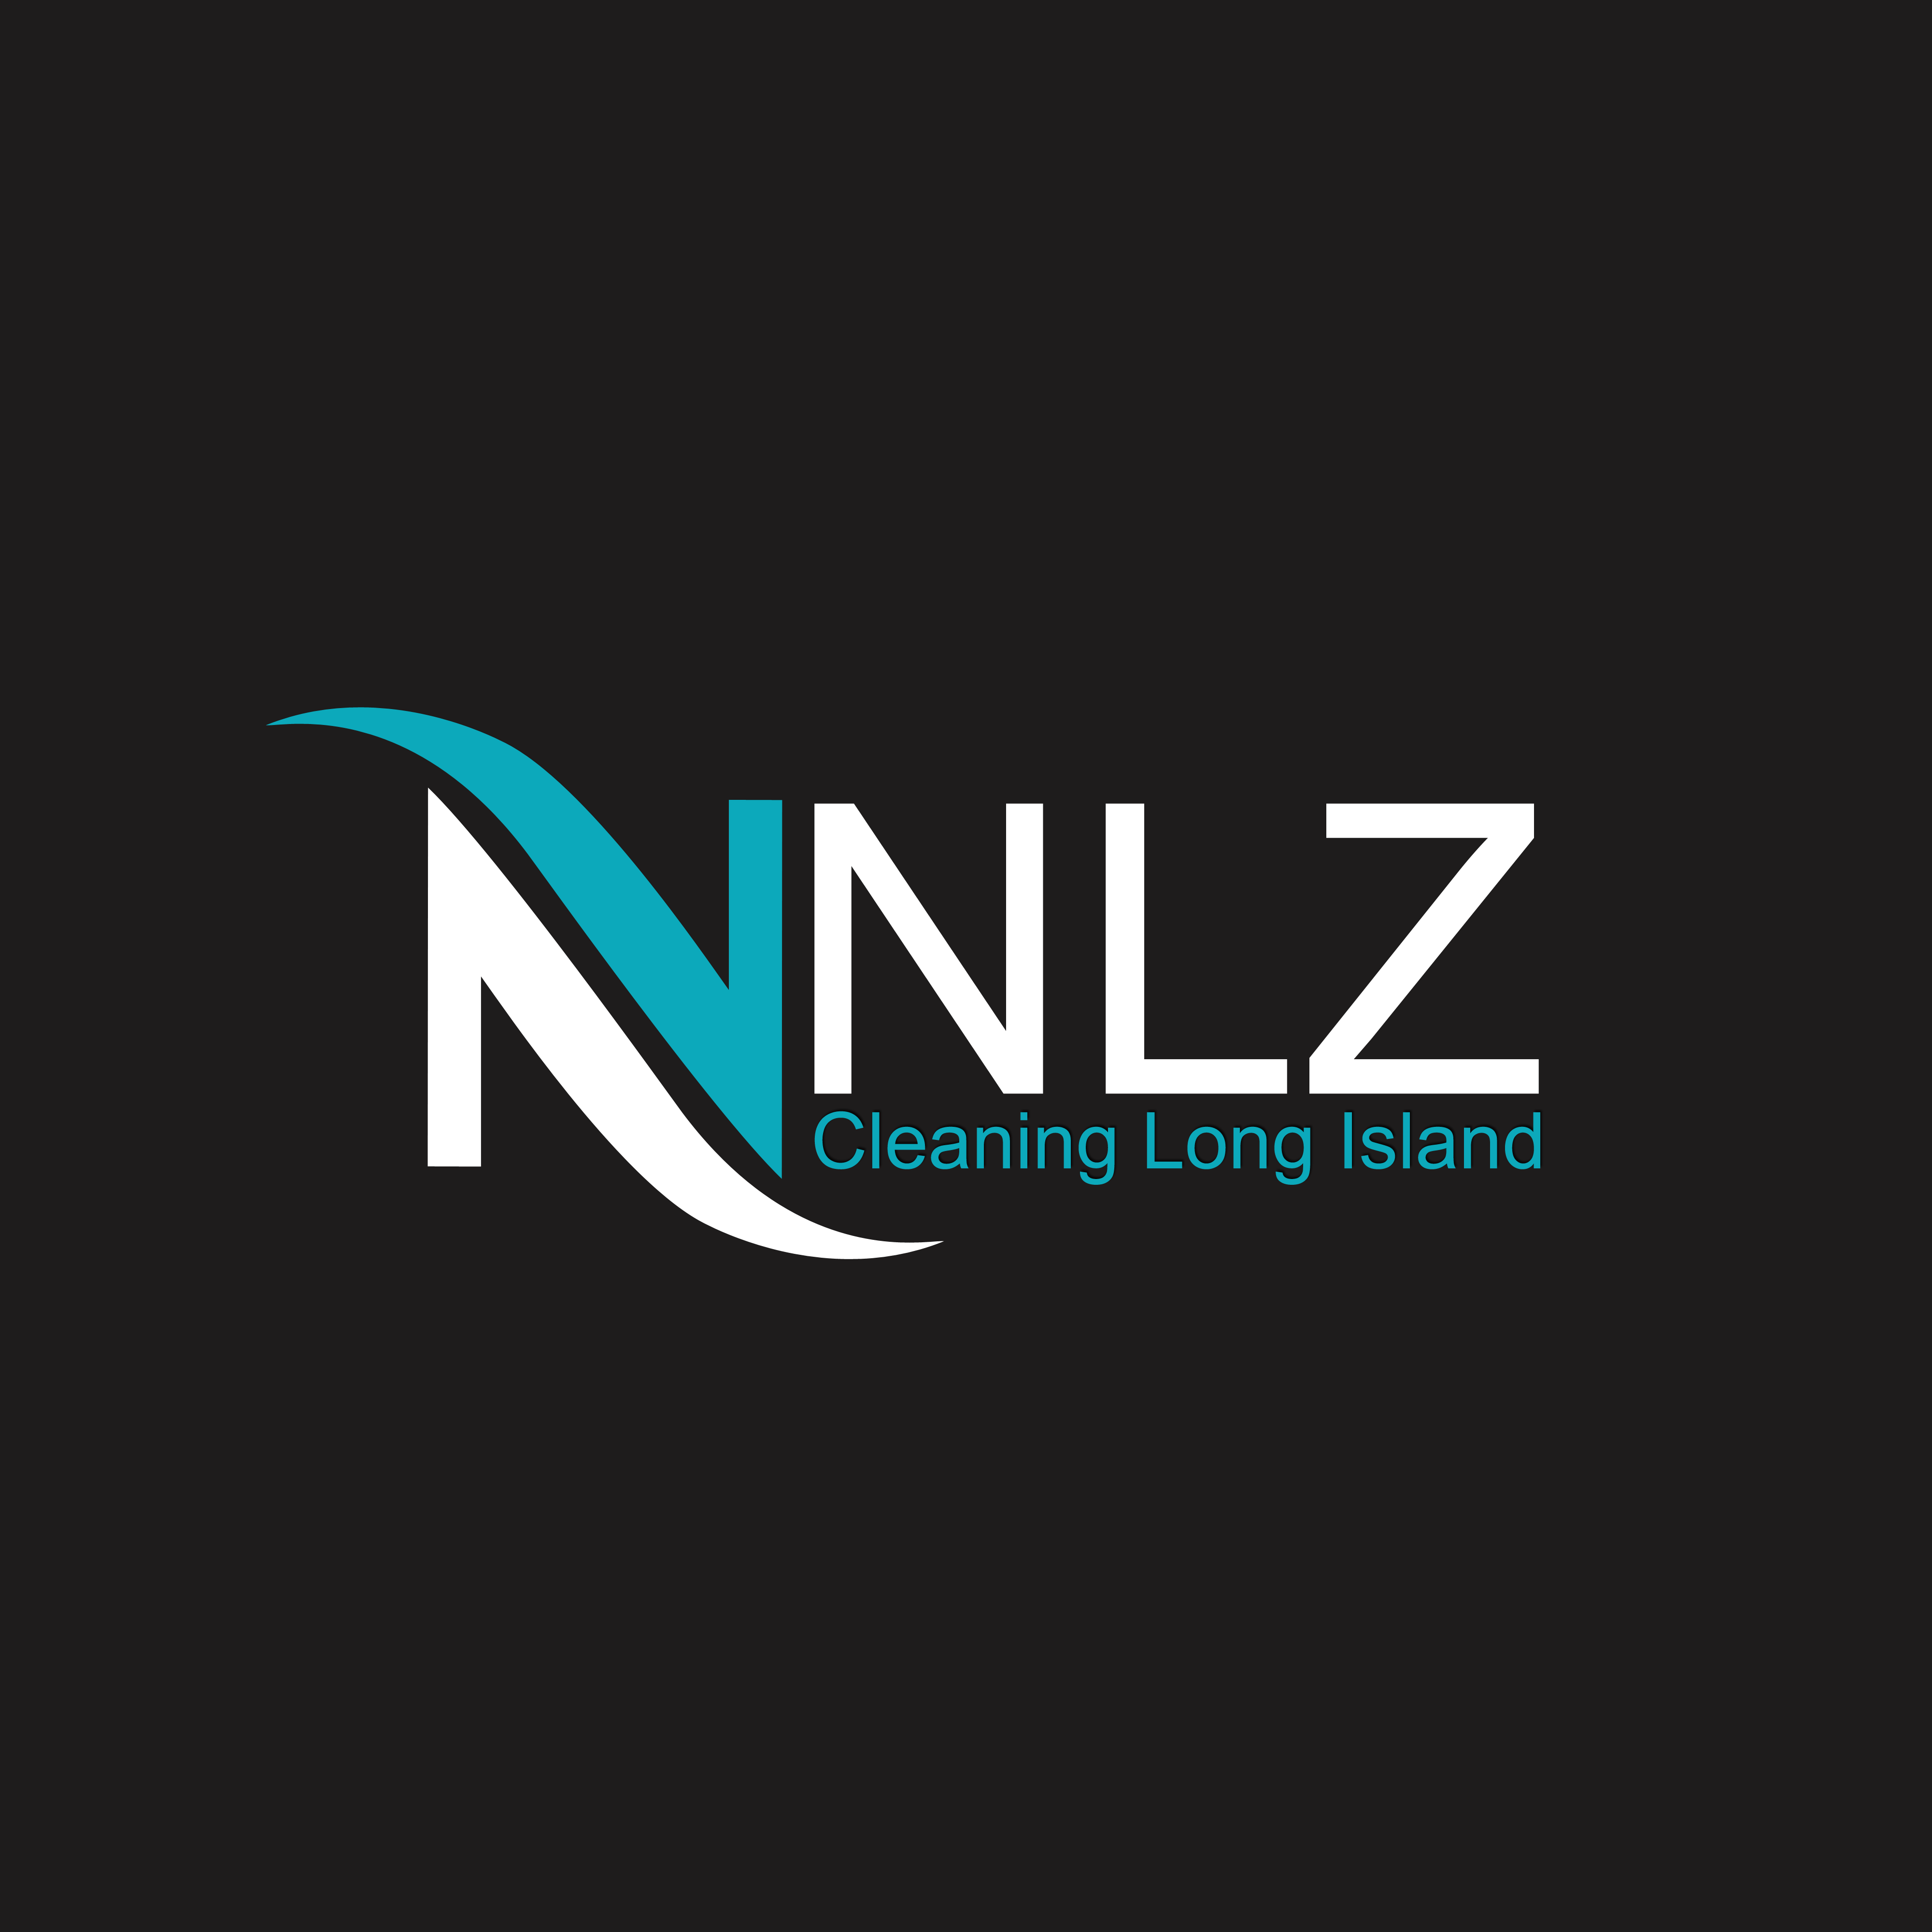 cleaning services long island nlz cleaning services of long